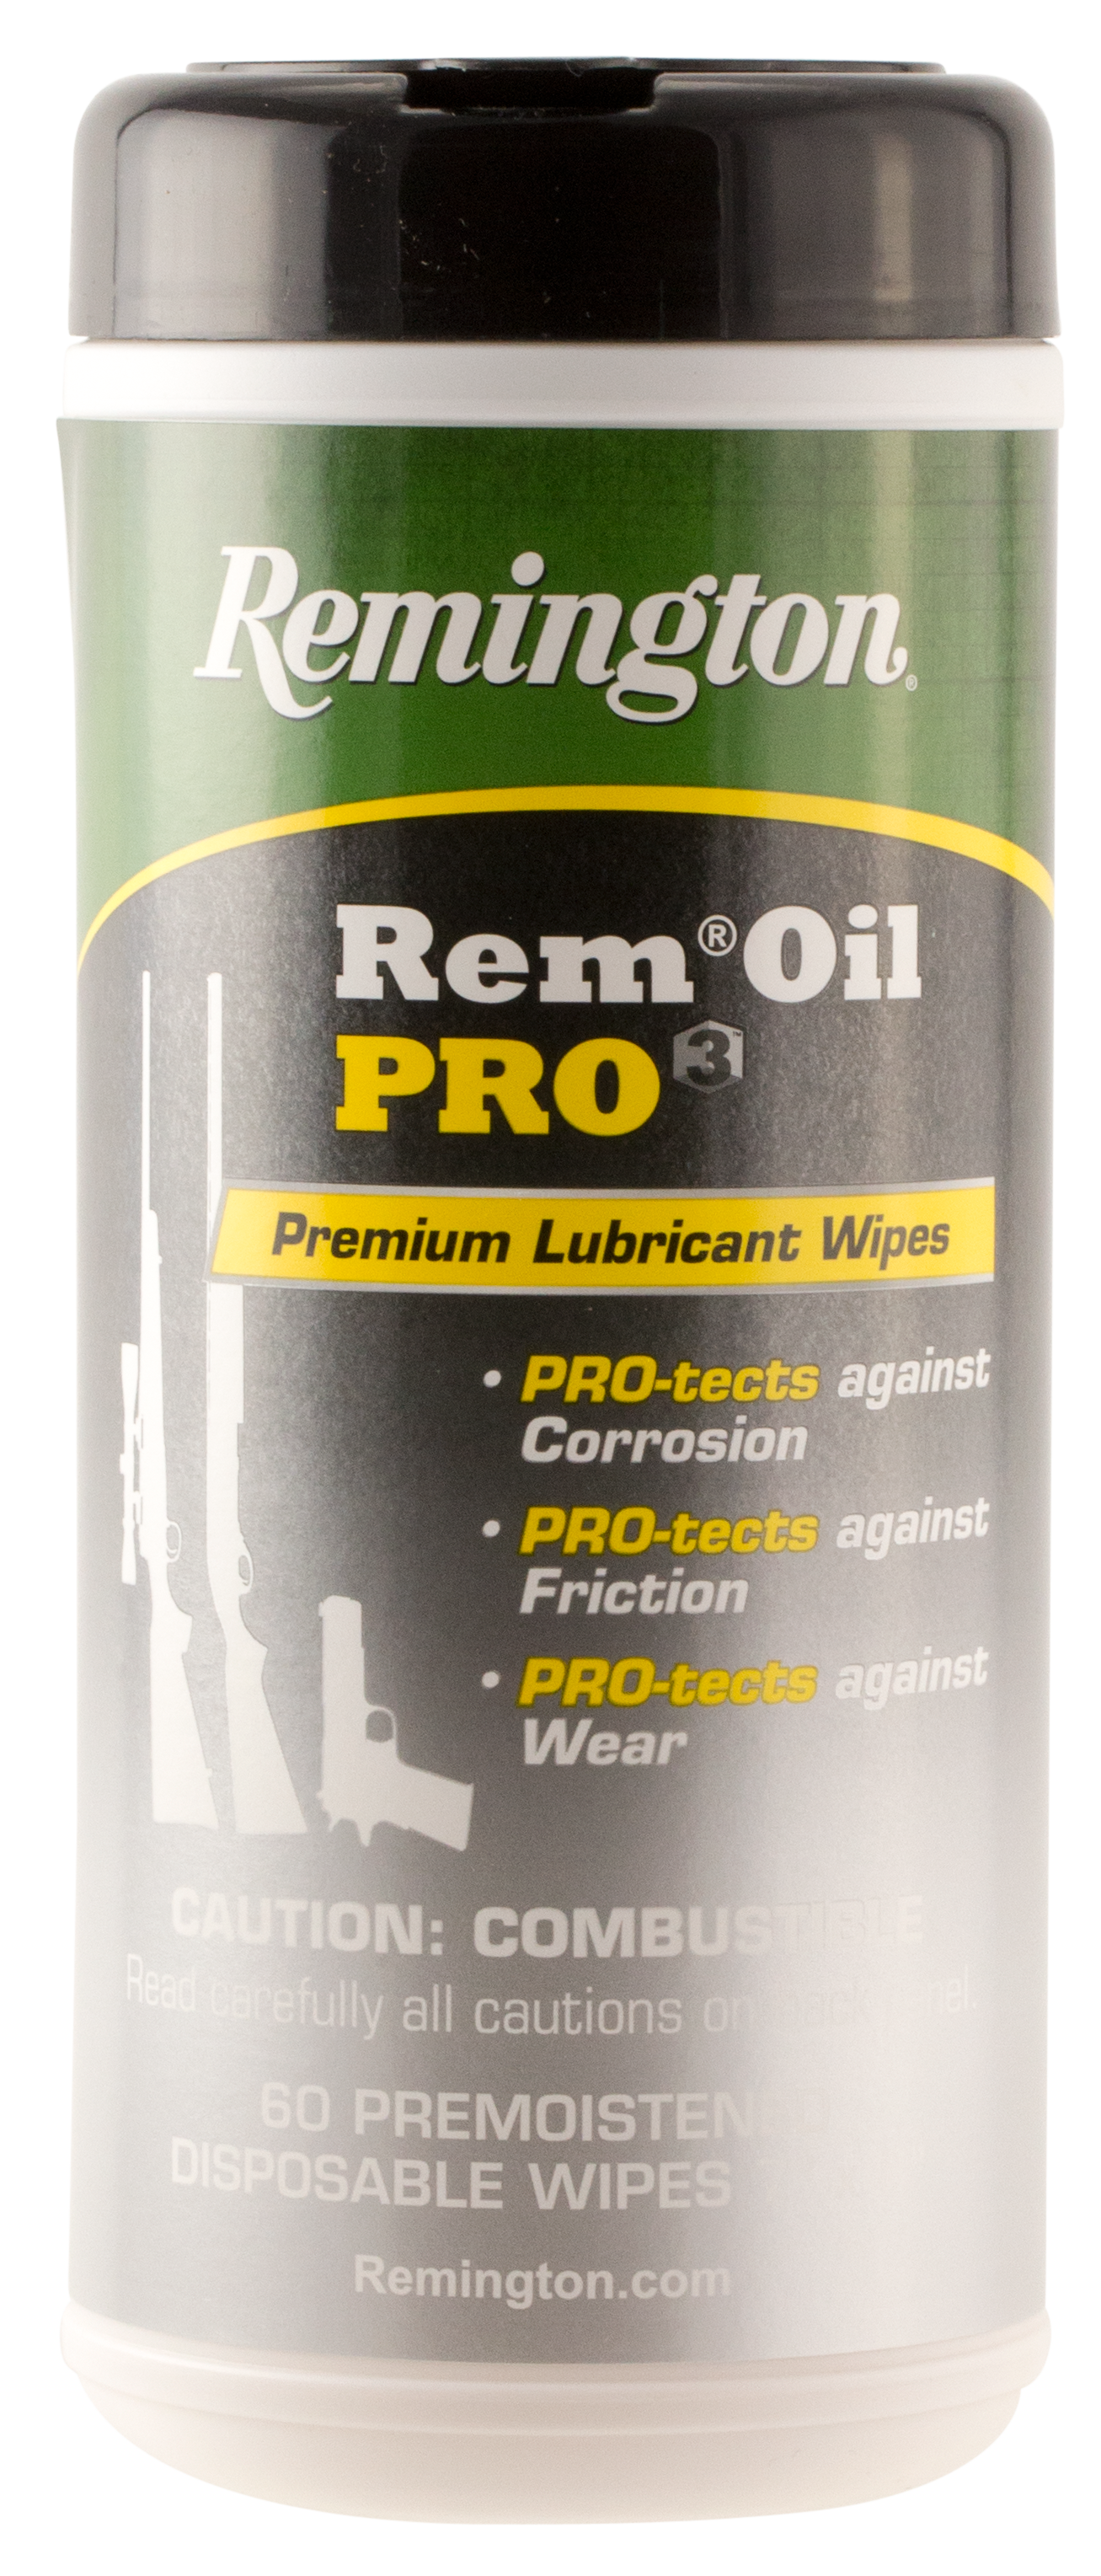 Remington Accessories 18922 Rem Oil Pro3 Lubricant Wipes 60 Count